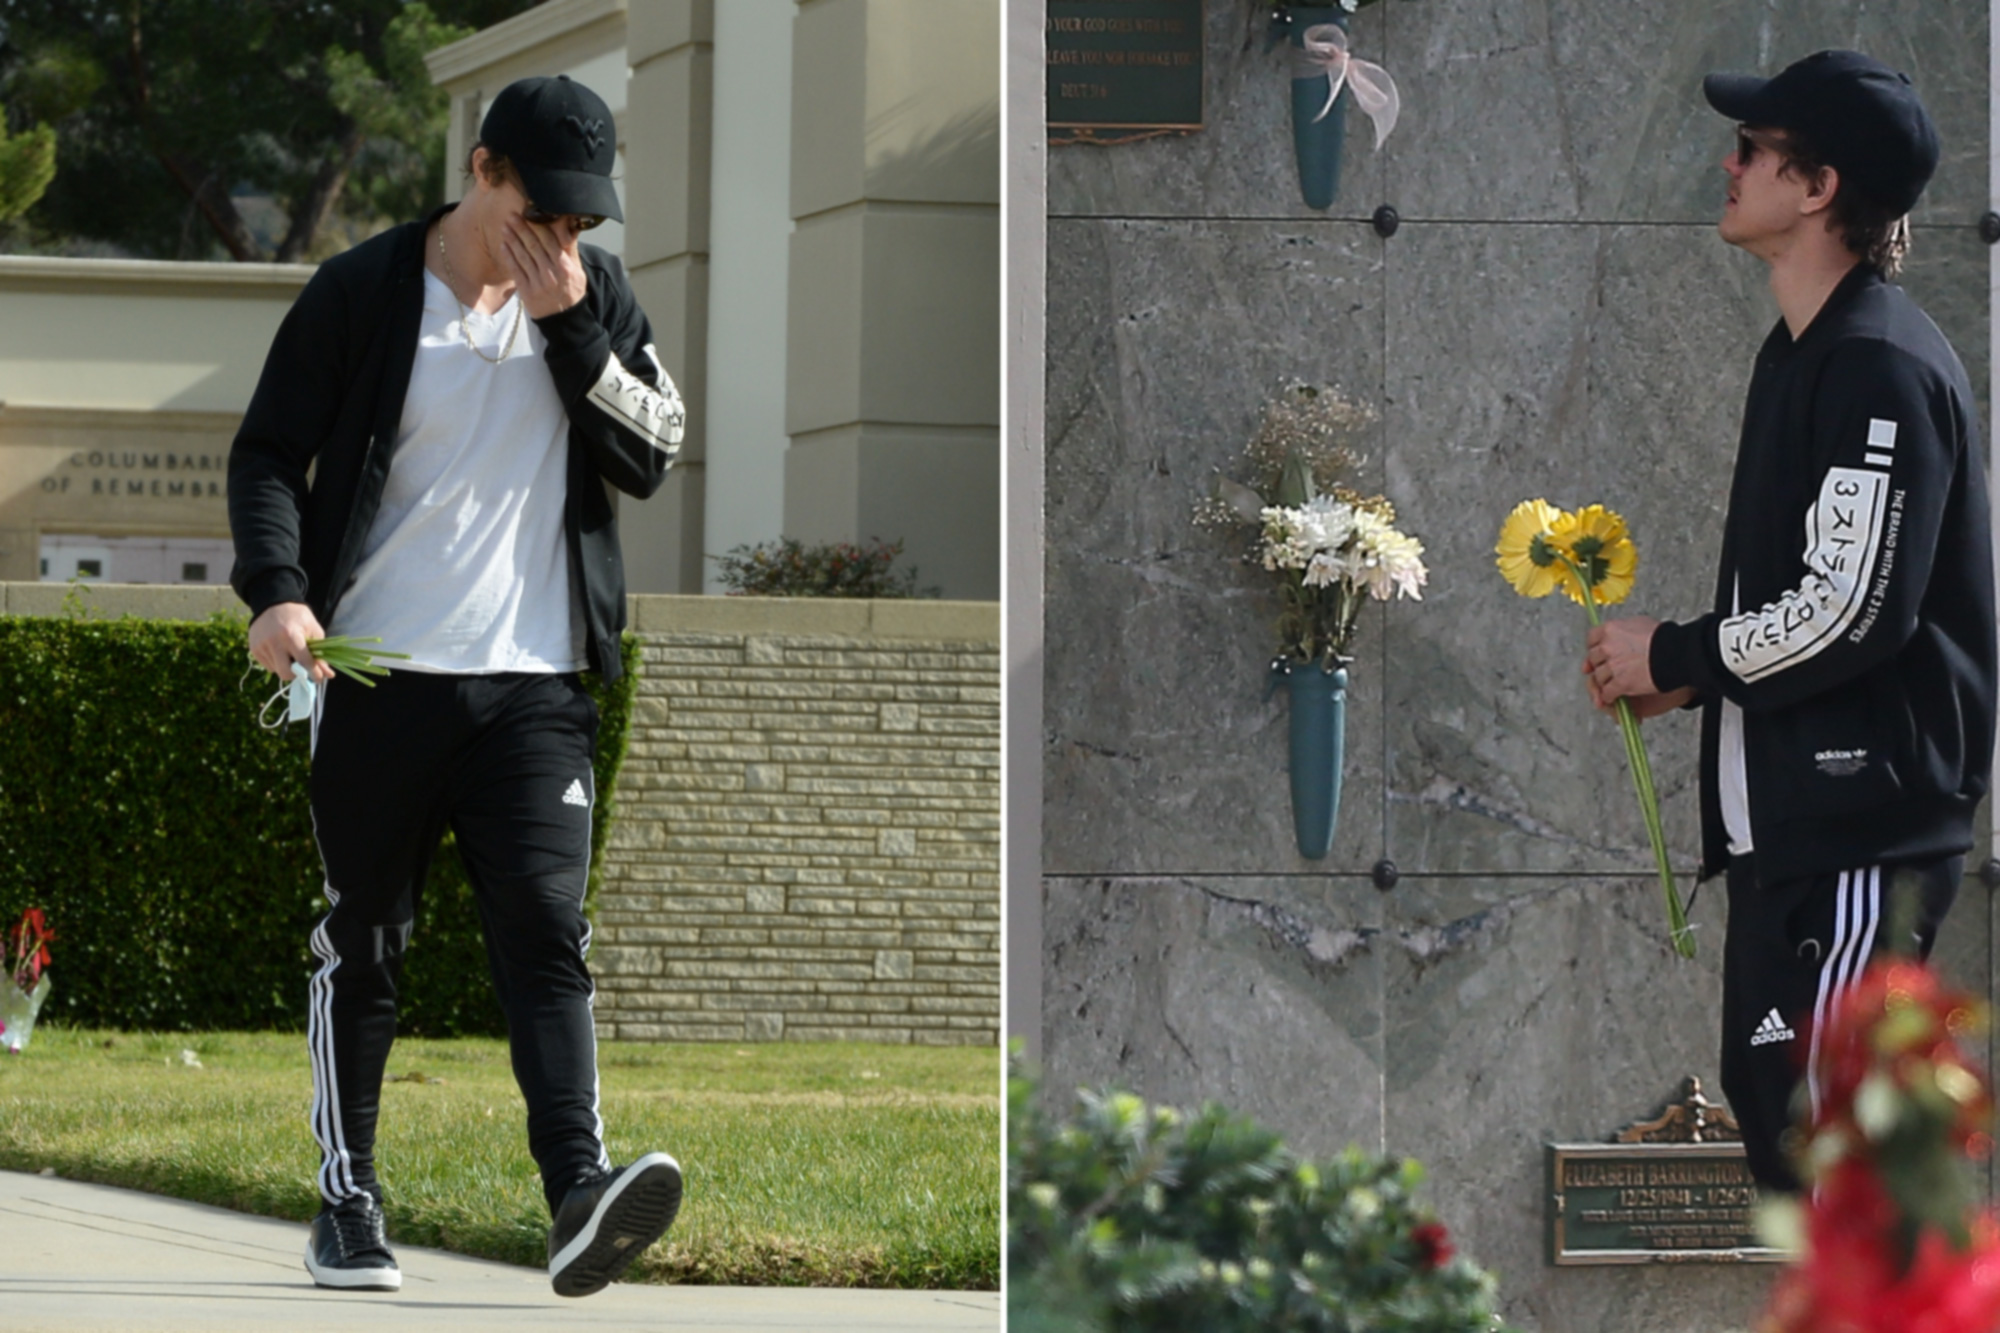 Ryan Dorsey tears up while visiting Naya Rivera's grave